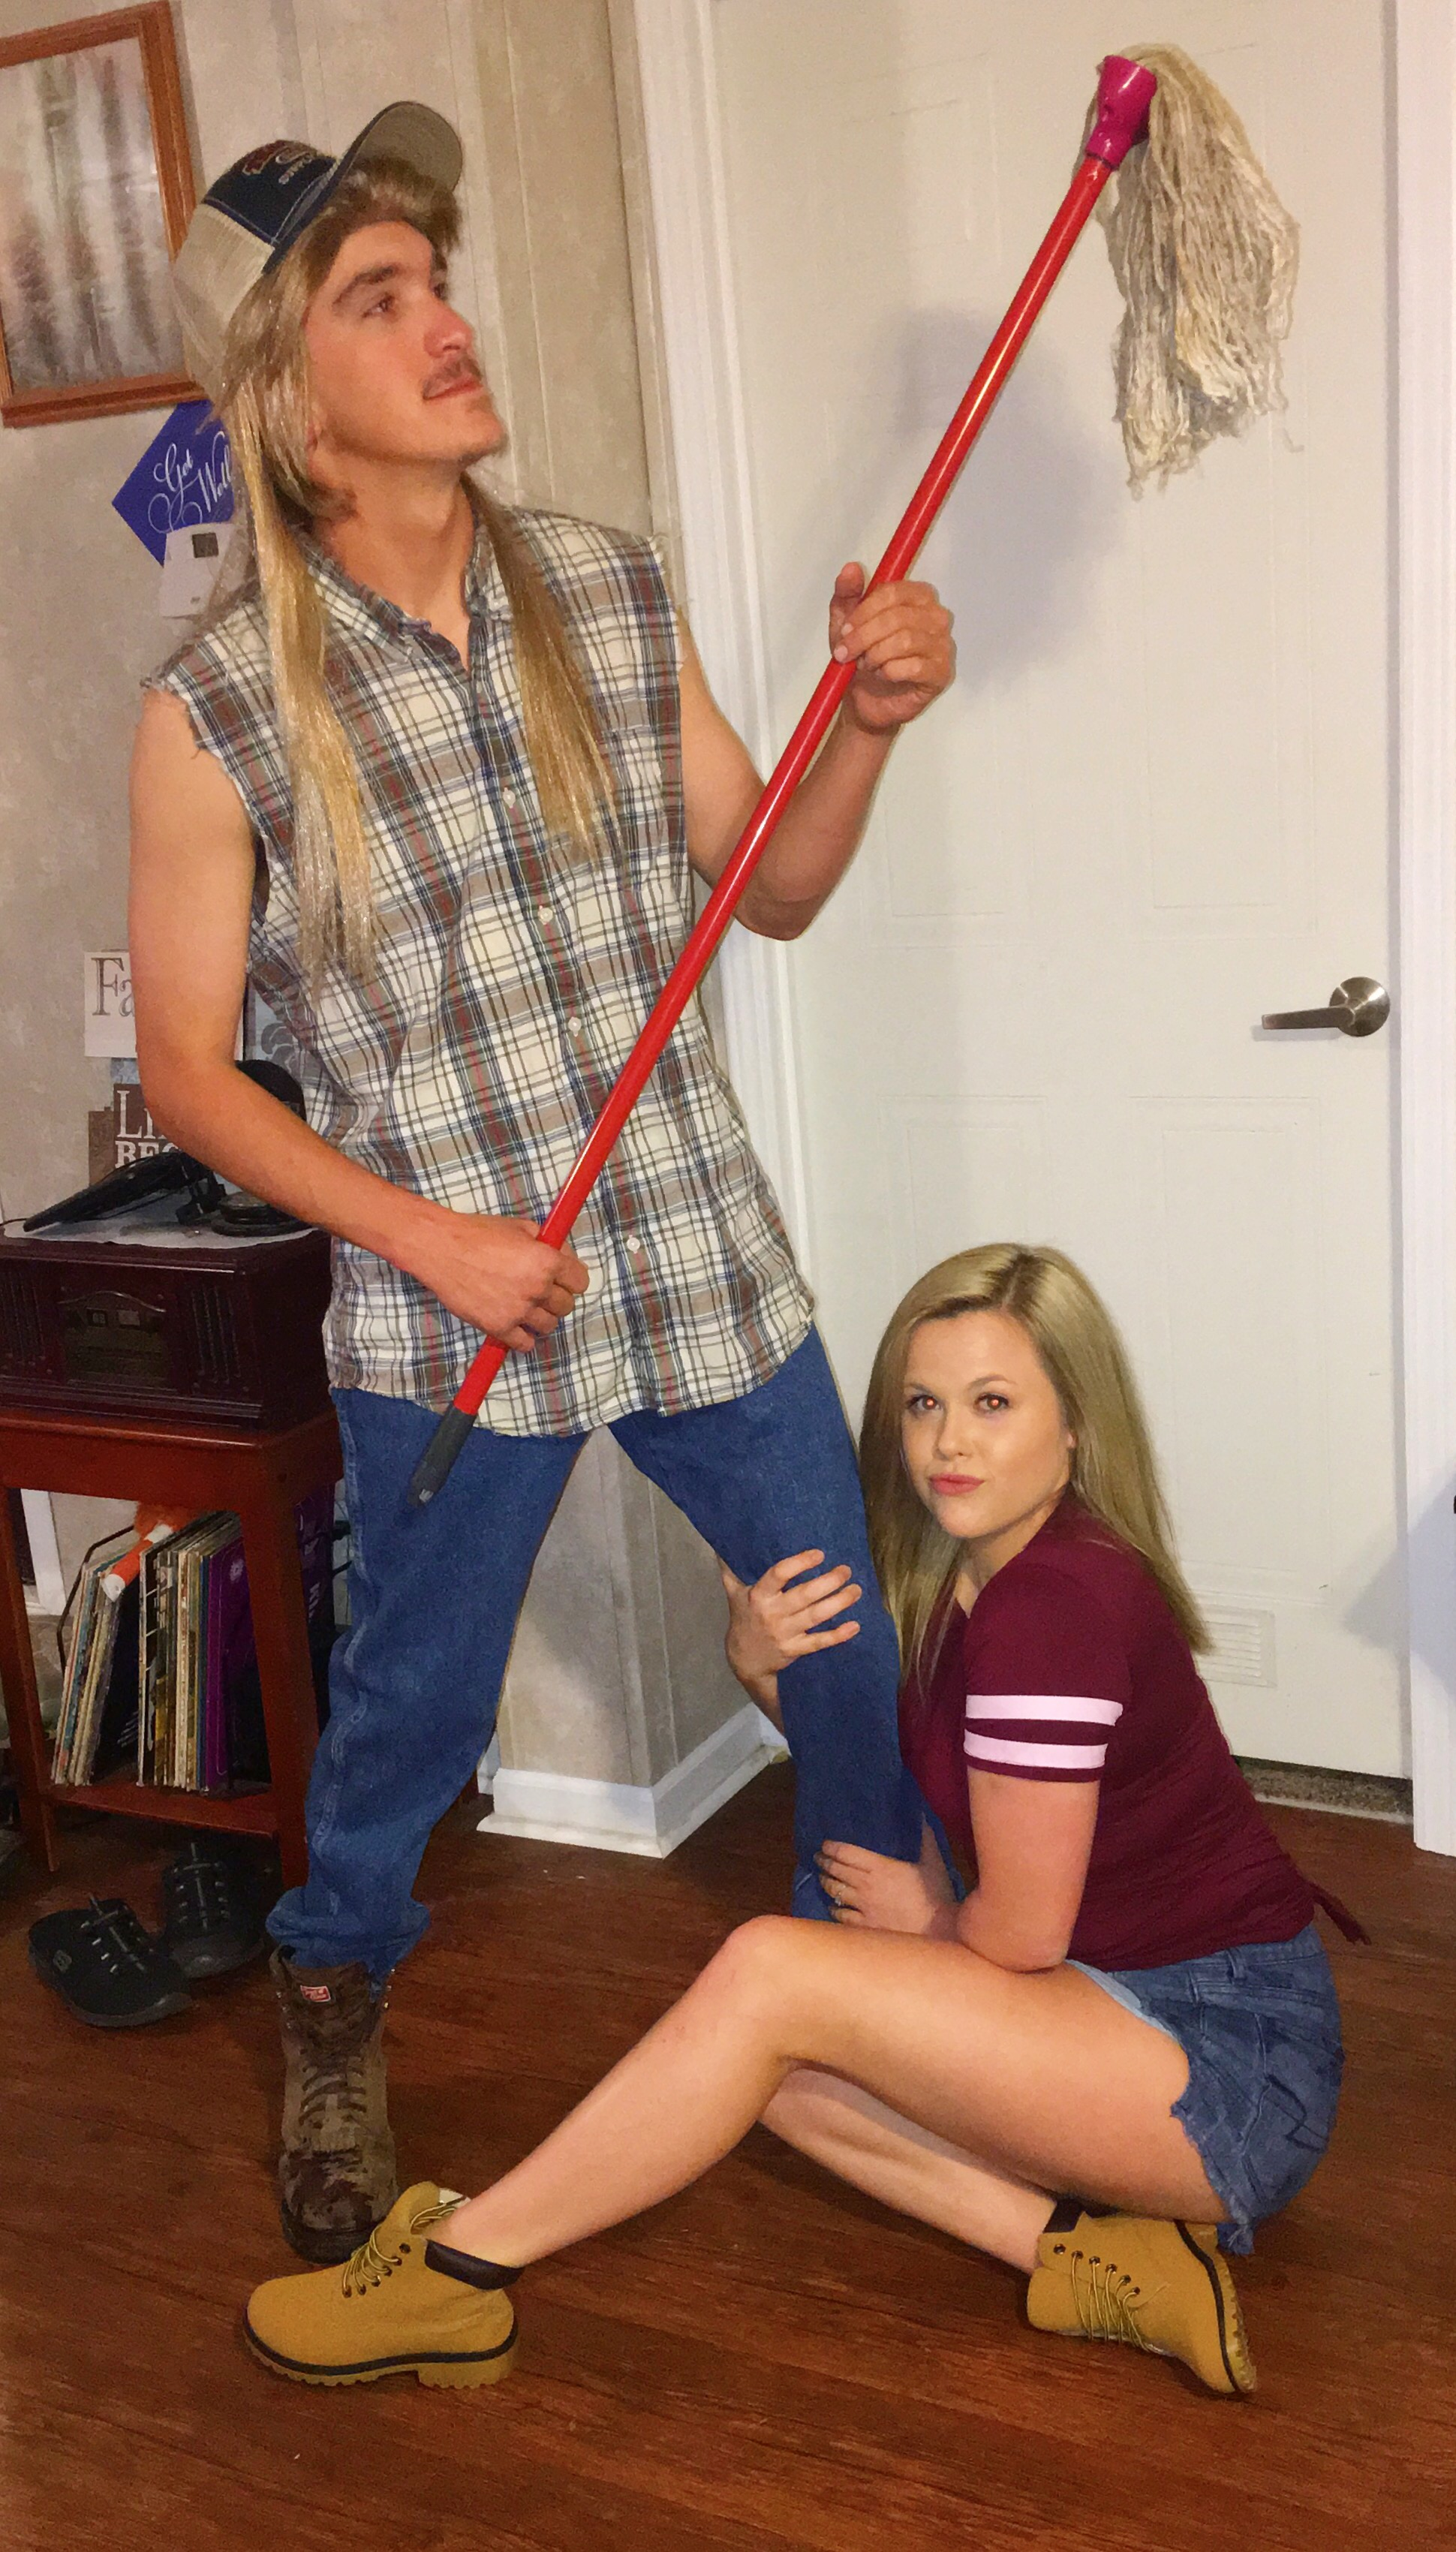 Joe Dirt & Brandy